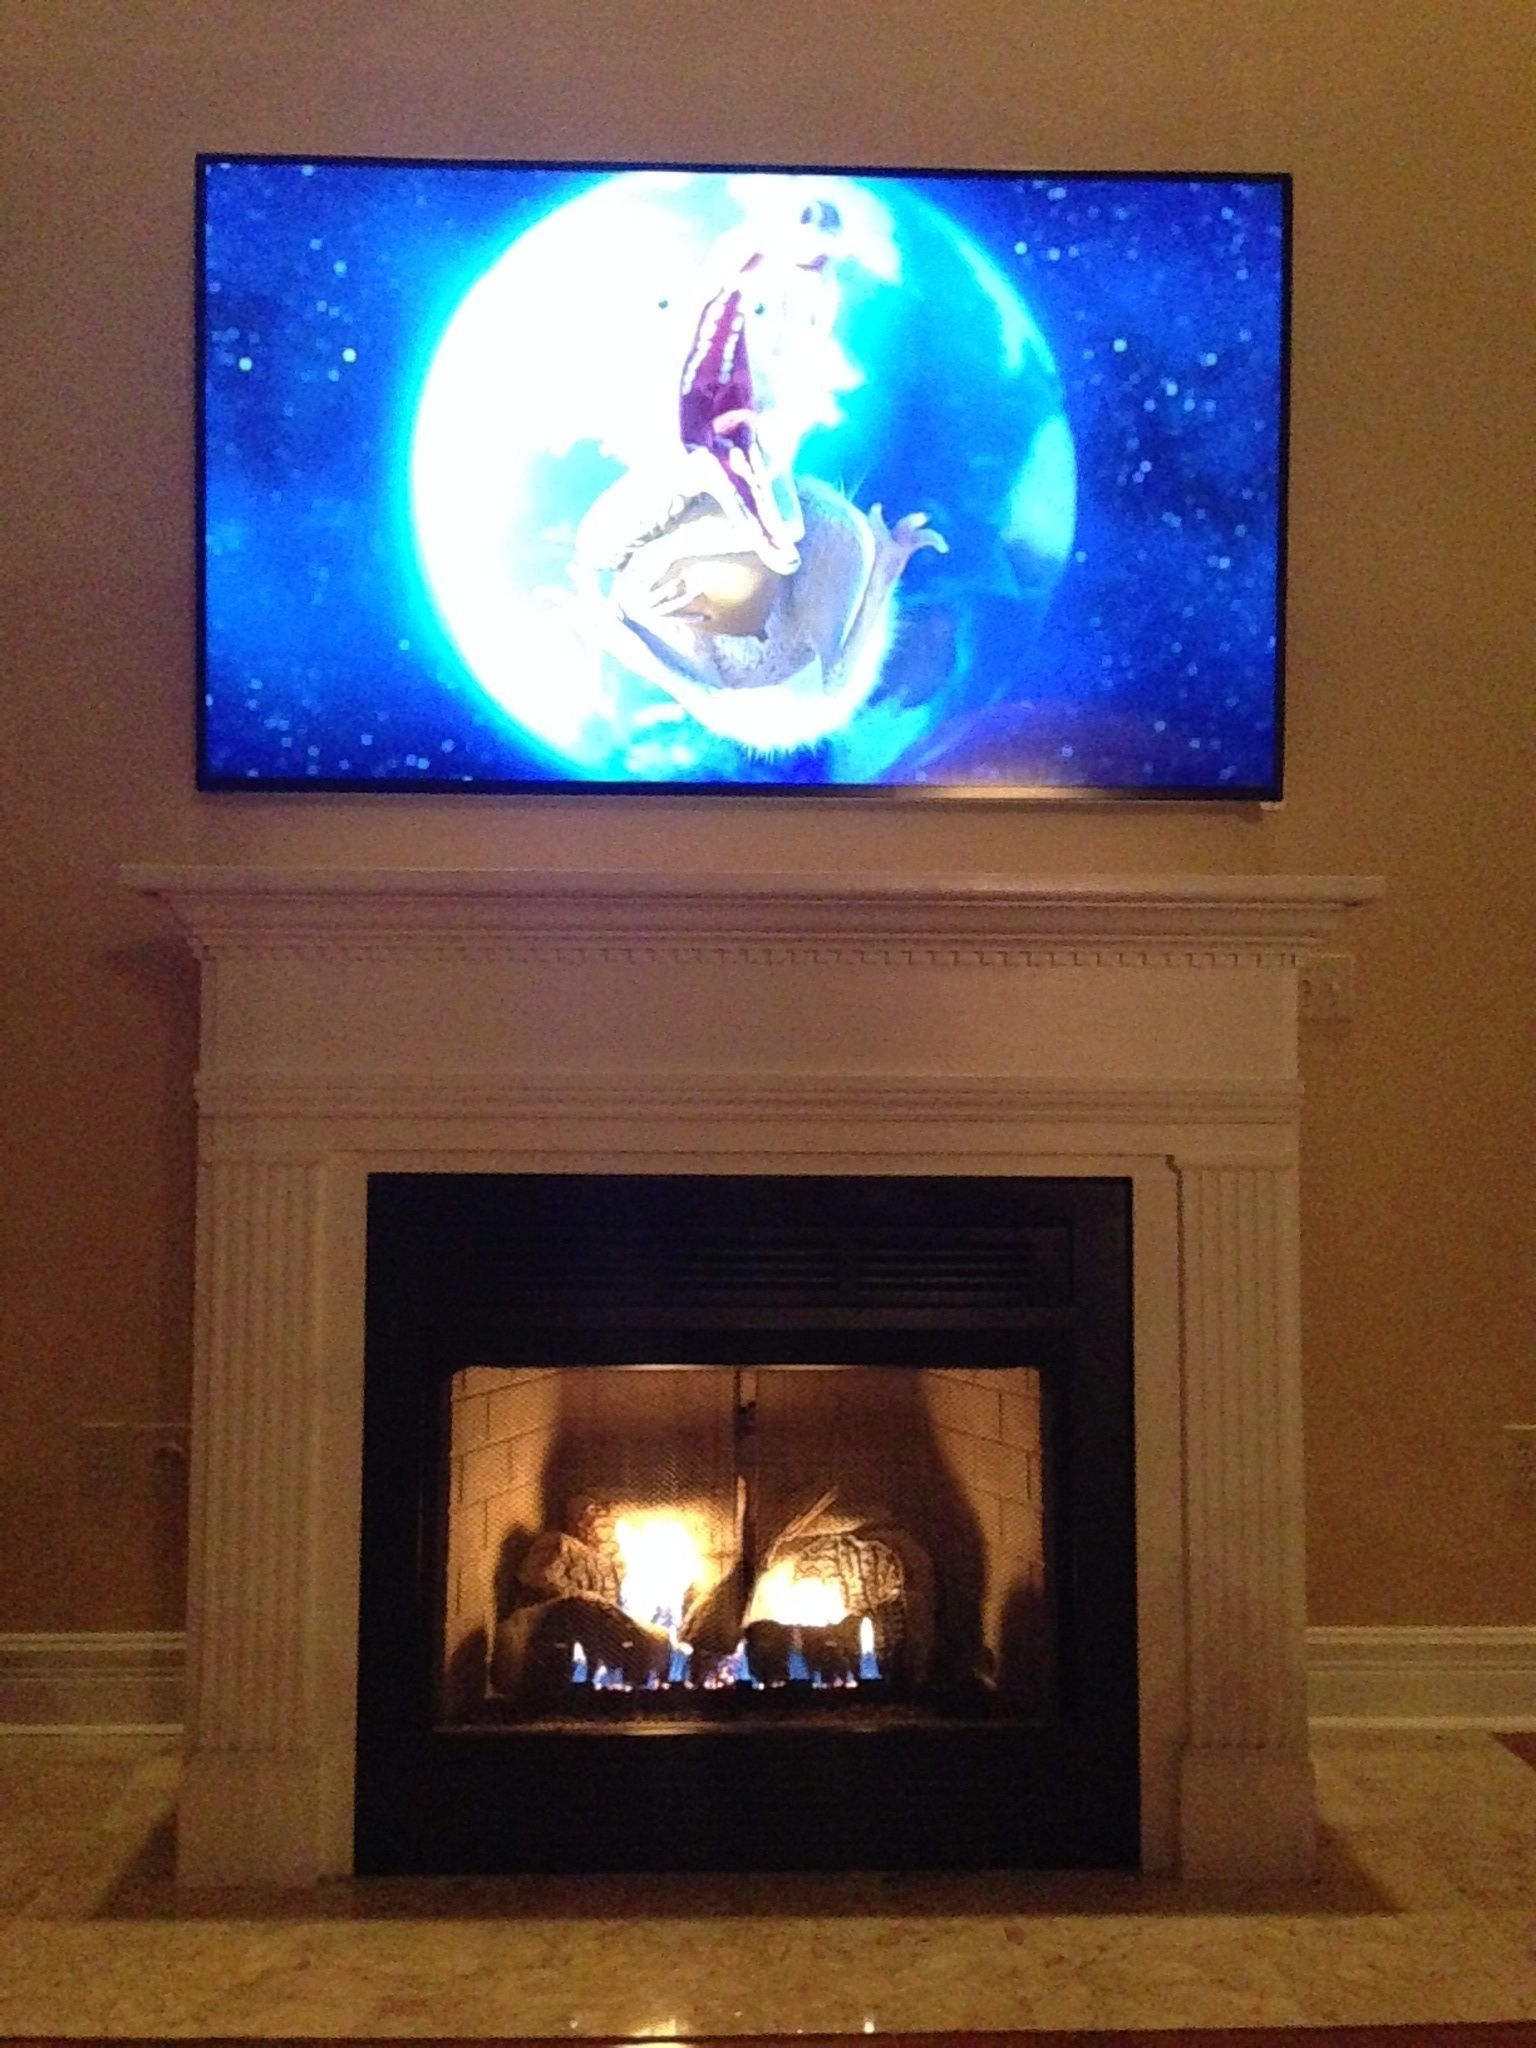 Tv Above Fireplace Mounting Dilemma Need A Tv Mount That